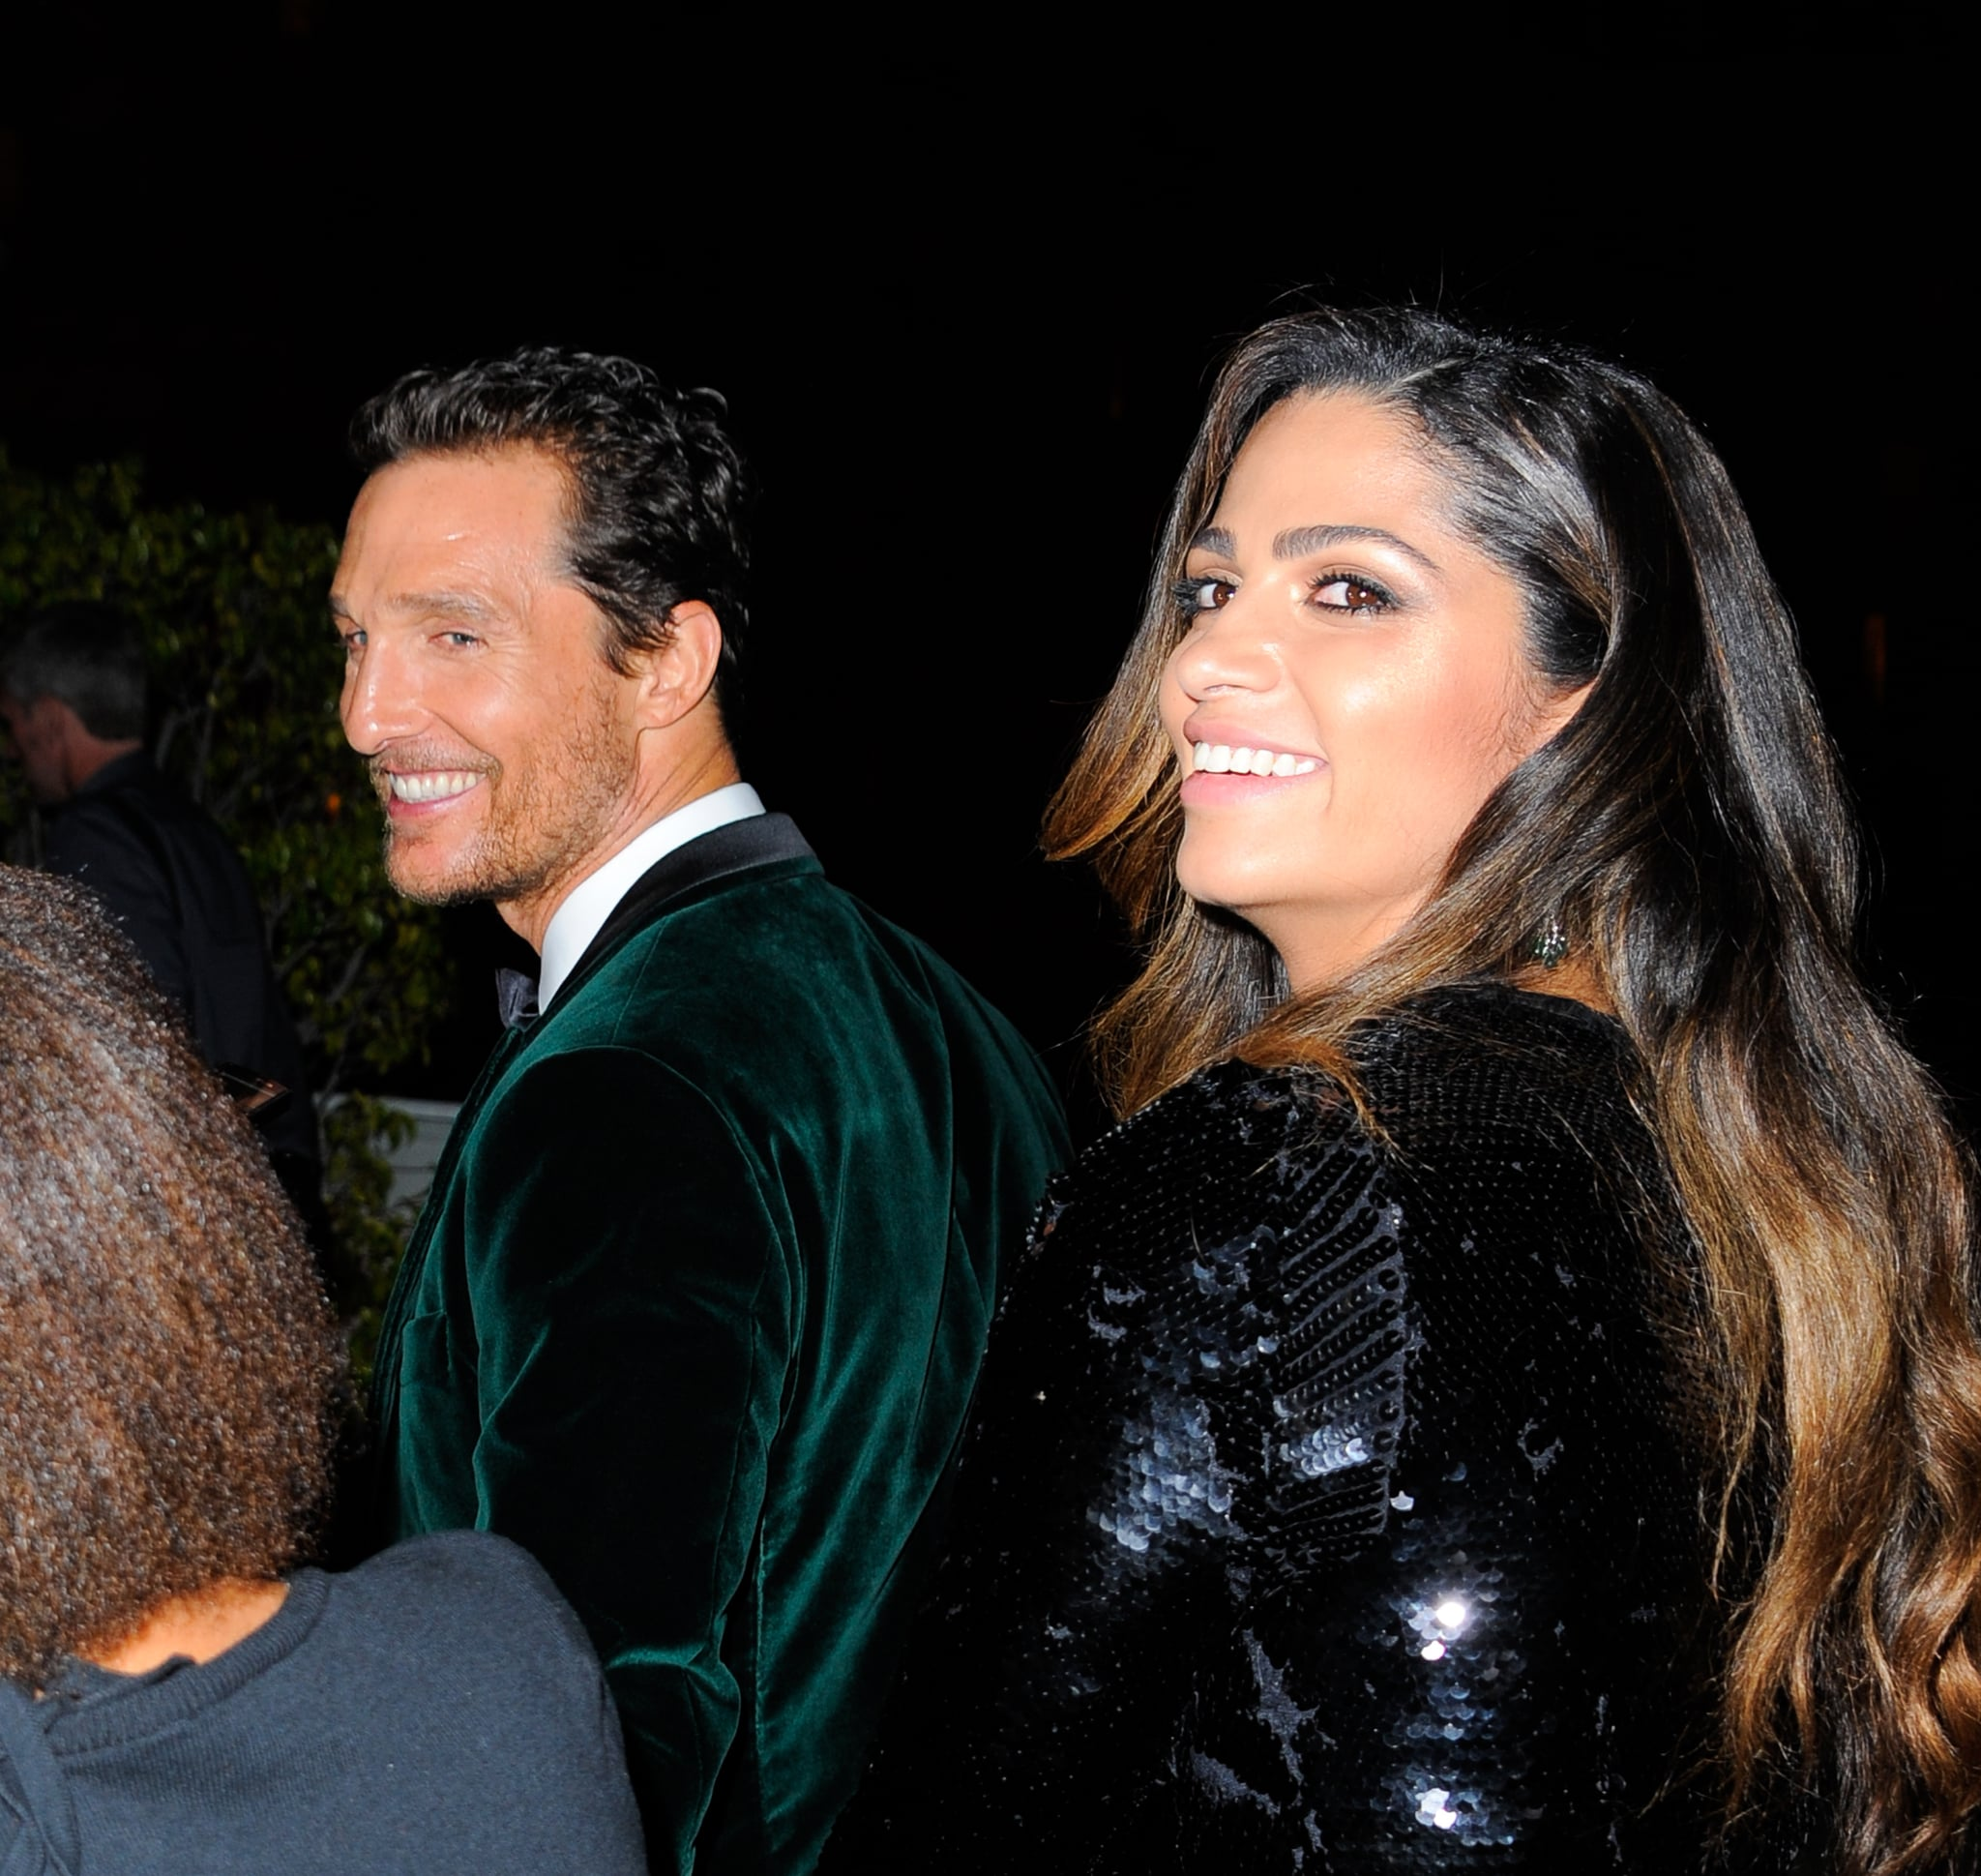 Matthew McConaughey and Camila Alves were all smiles.